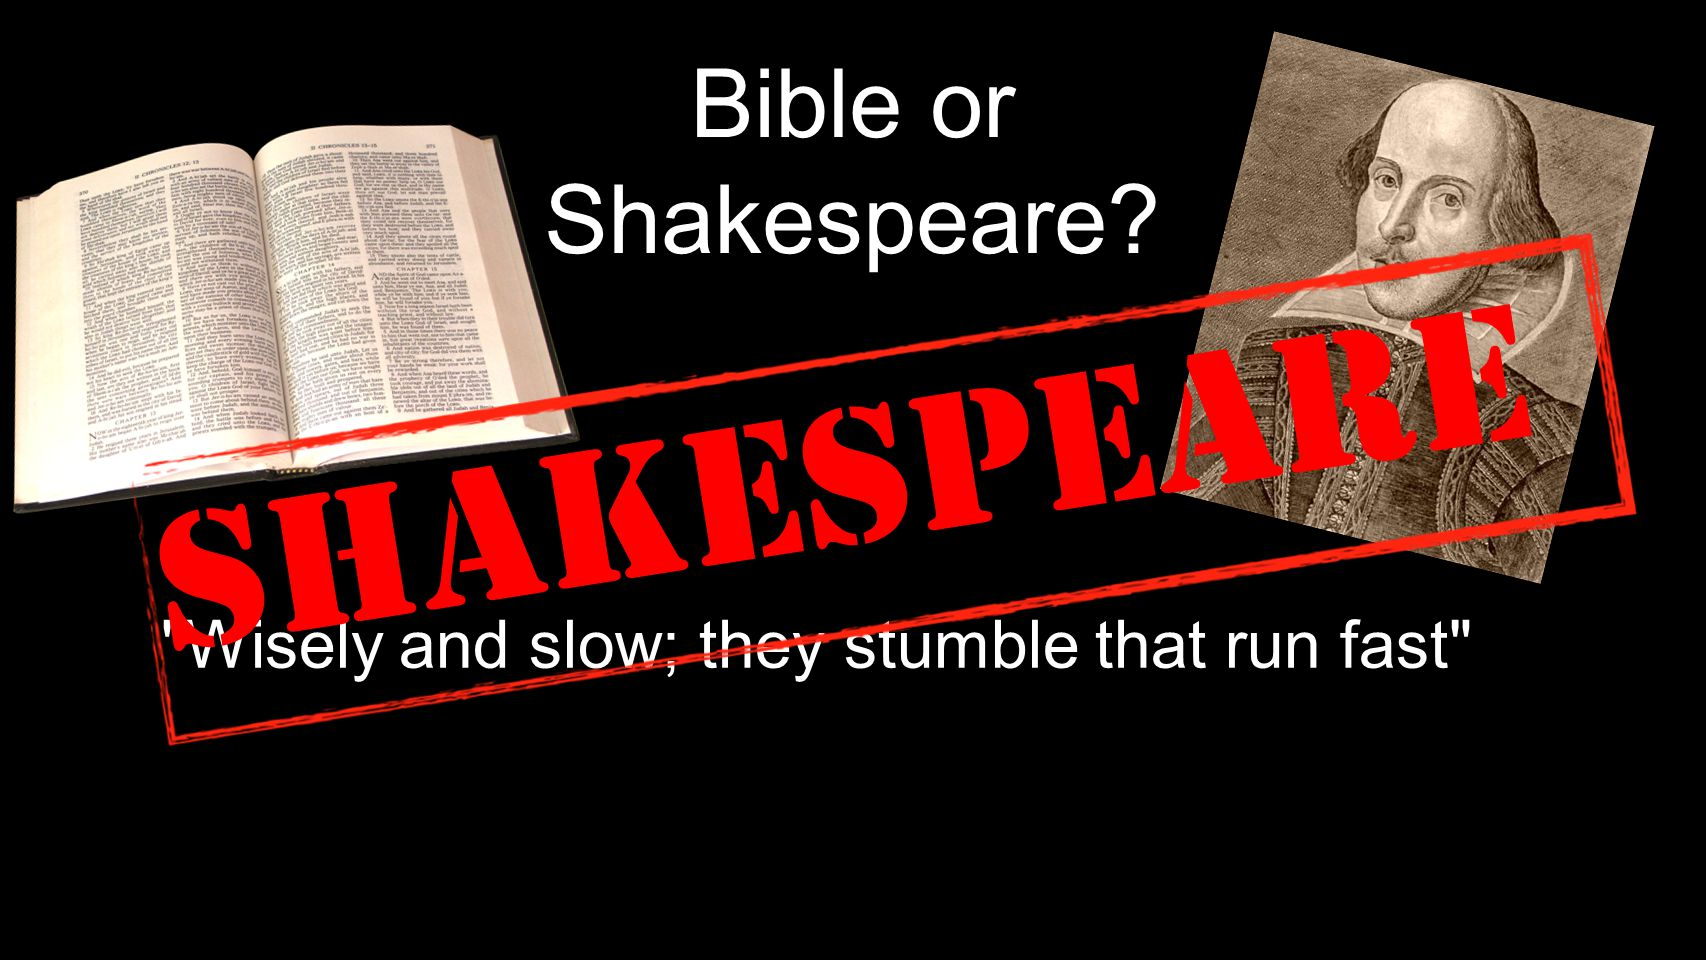 Bible or Shakespeare Wisely and slow; they stumble that run fast Shakespeare